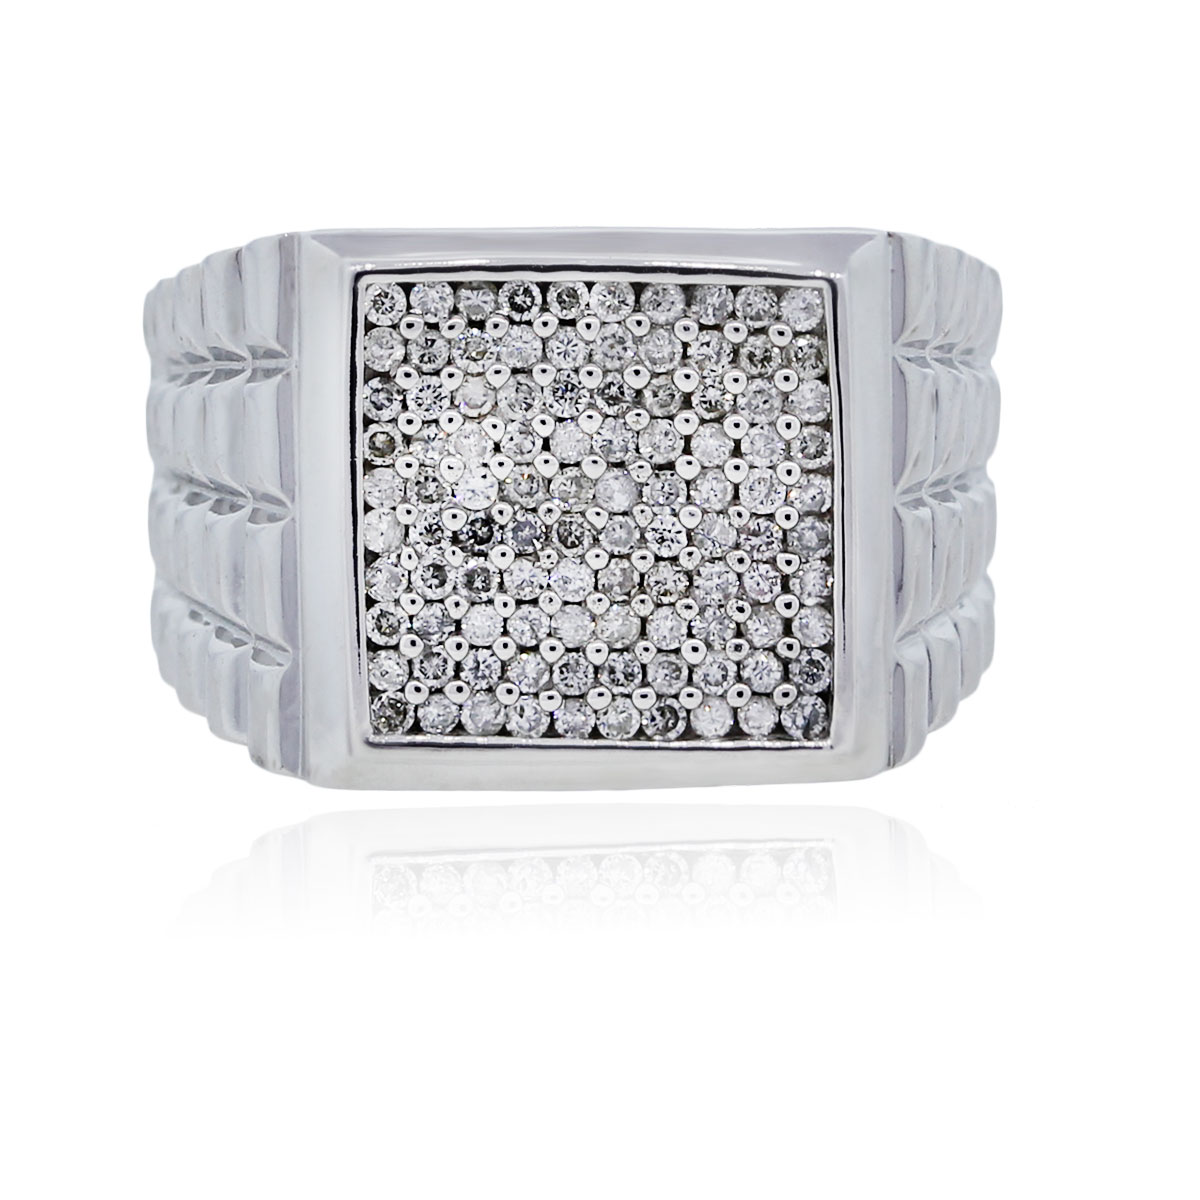 You are viewing this 14k White Gold Diamond Signet Mens Ring!